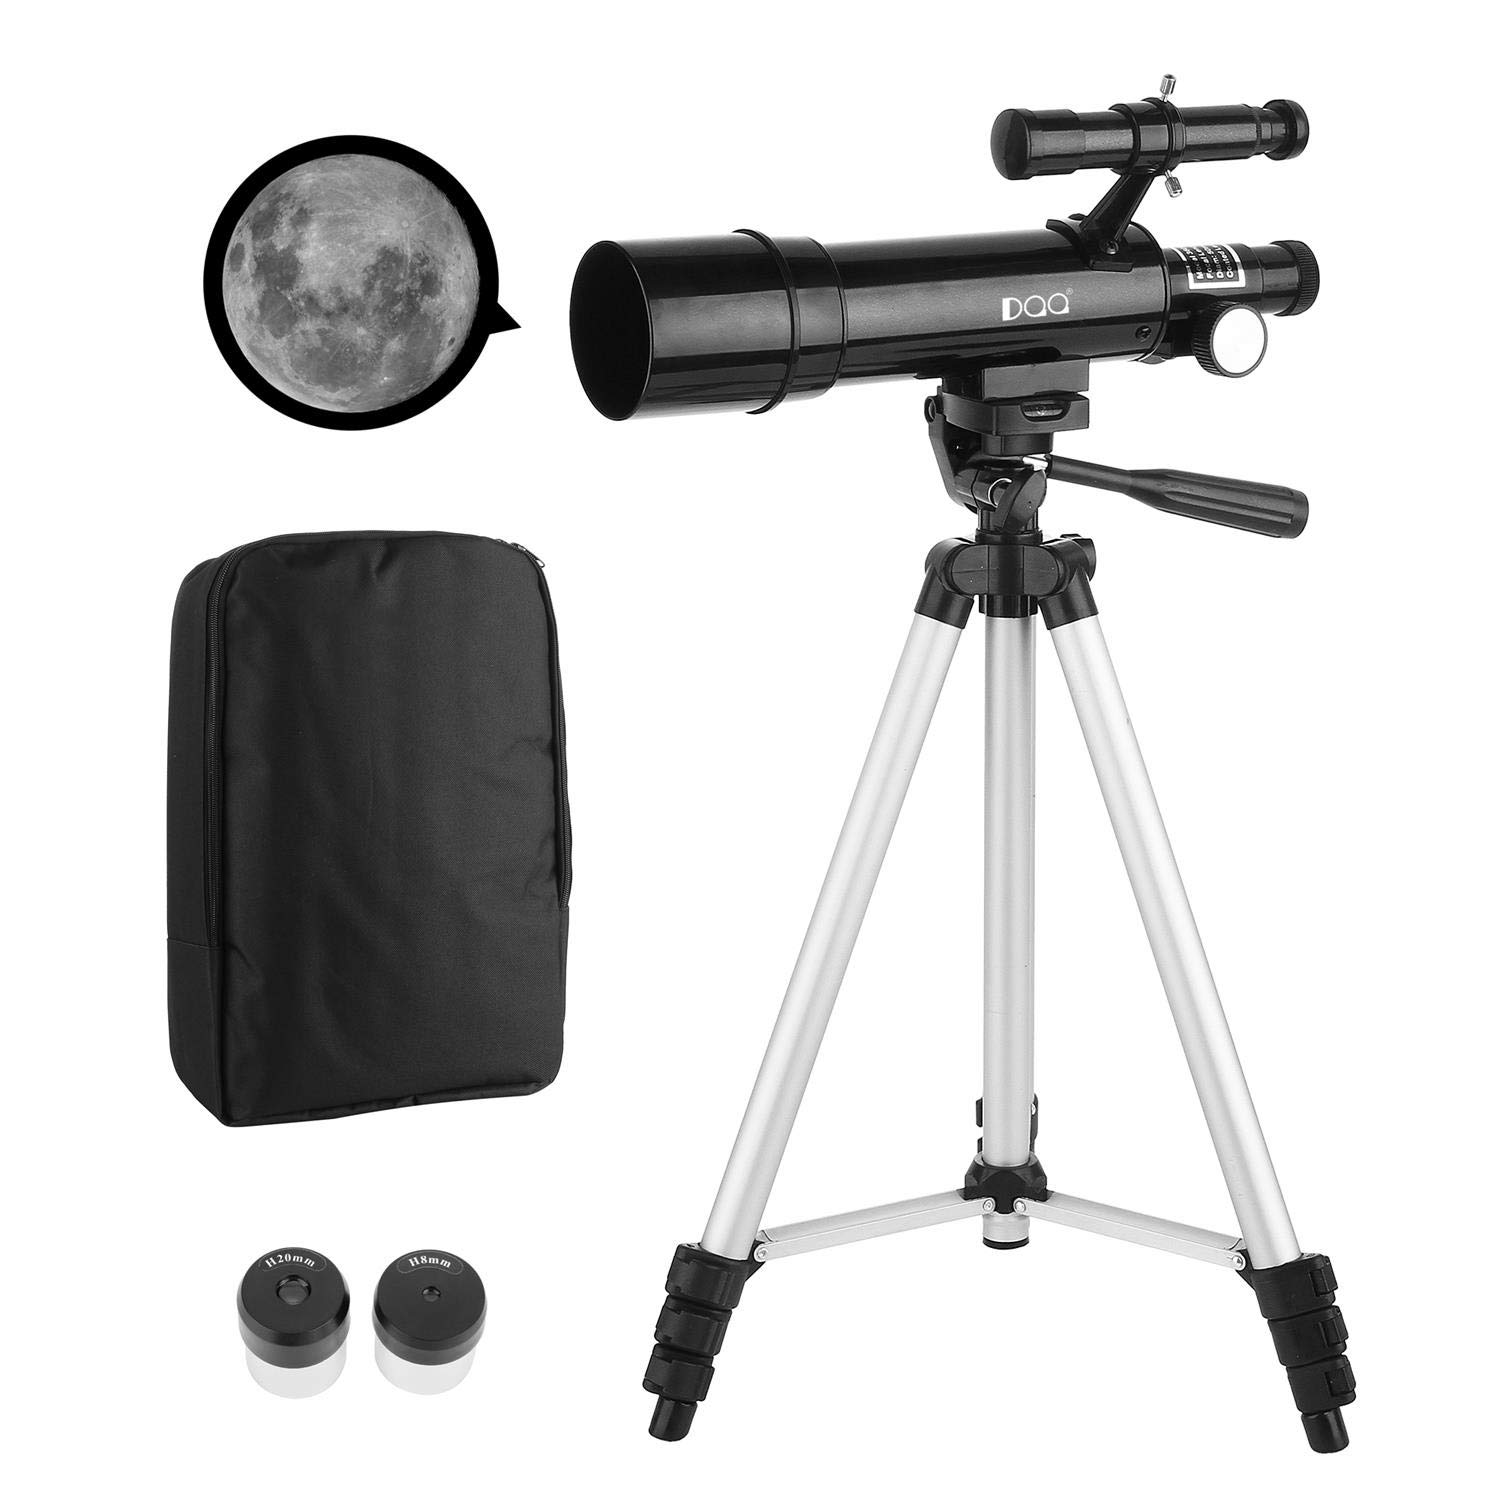 DQQ Refractor Finderscope Astronomy Educational Telescope for Kids Beginners Travel Scope with Tripod and Backpack Black 50mm,3X Barlow Lens by DQQ